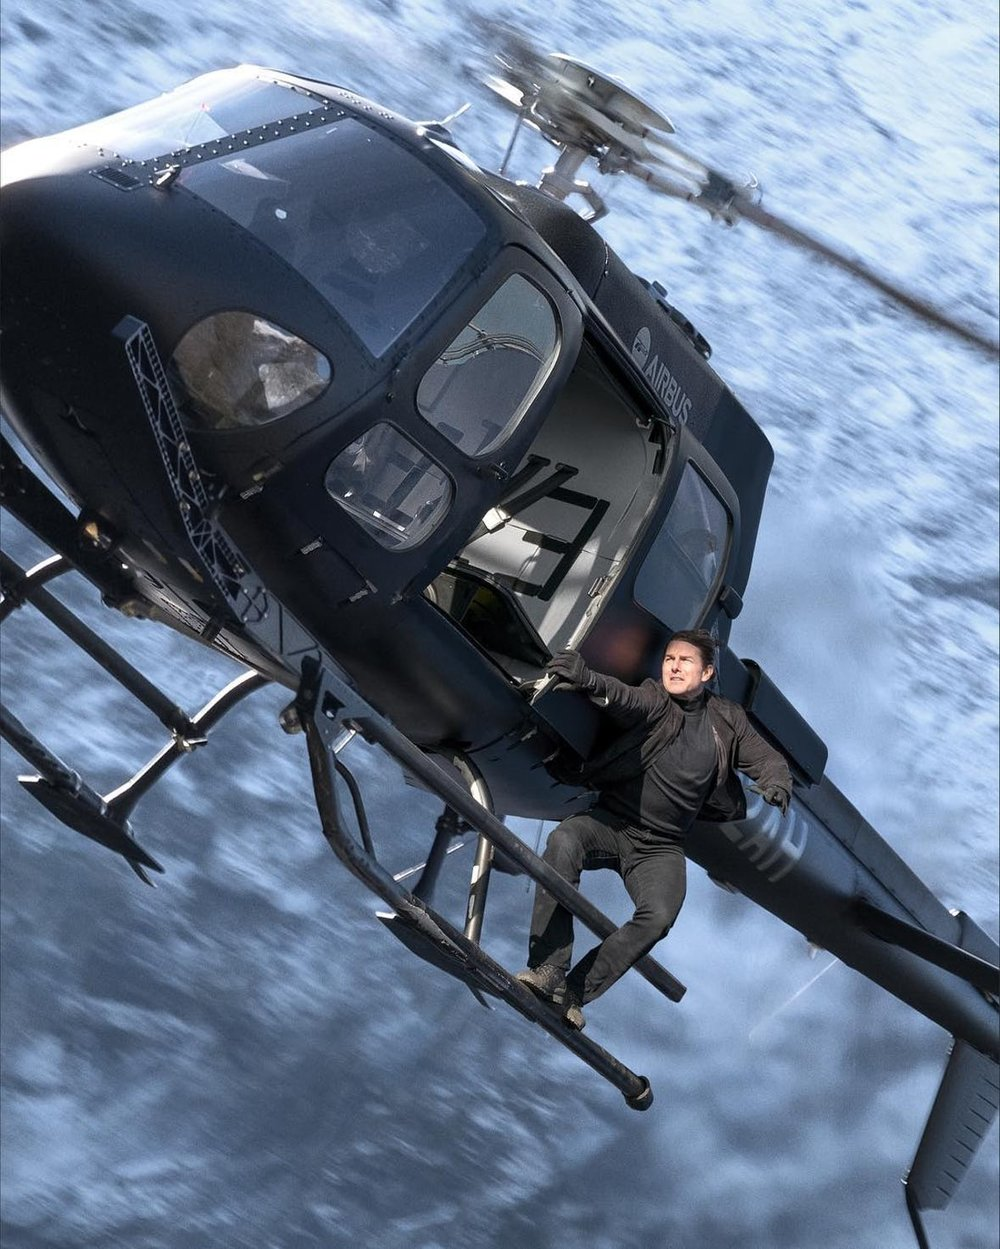 Tom-Cruise-in-Mission-Impossible-Fallout.jpg